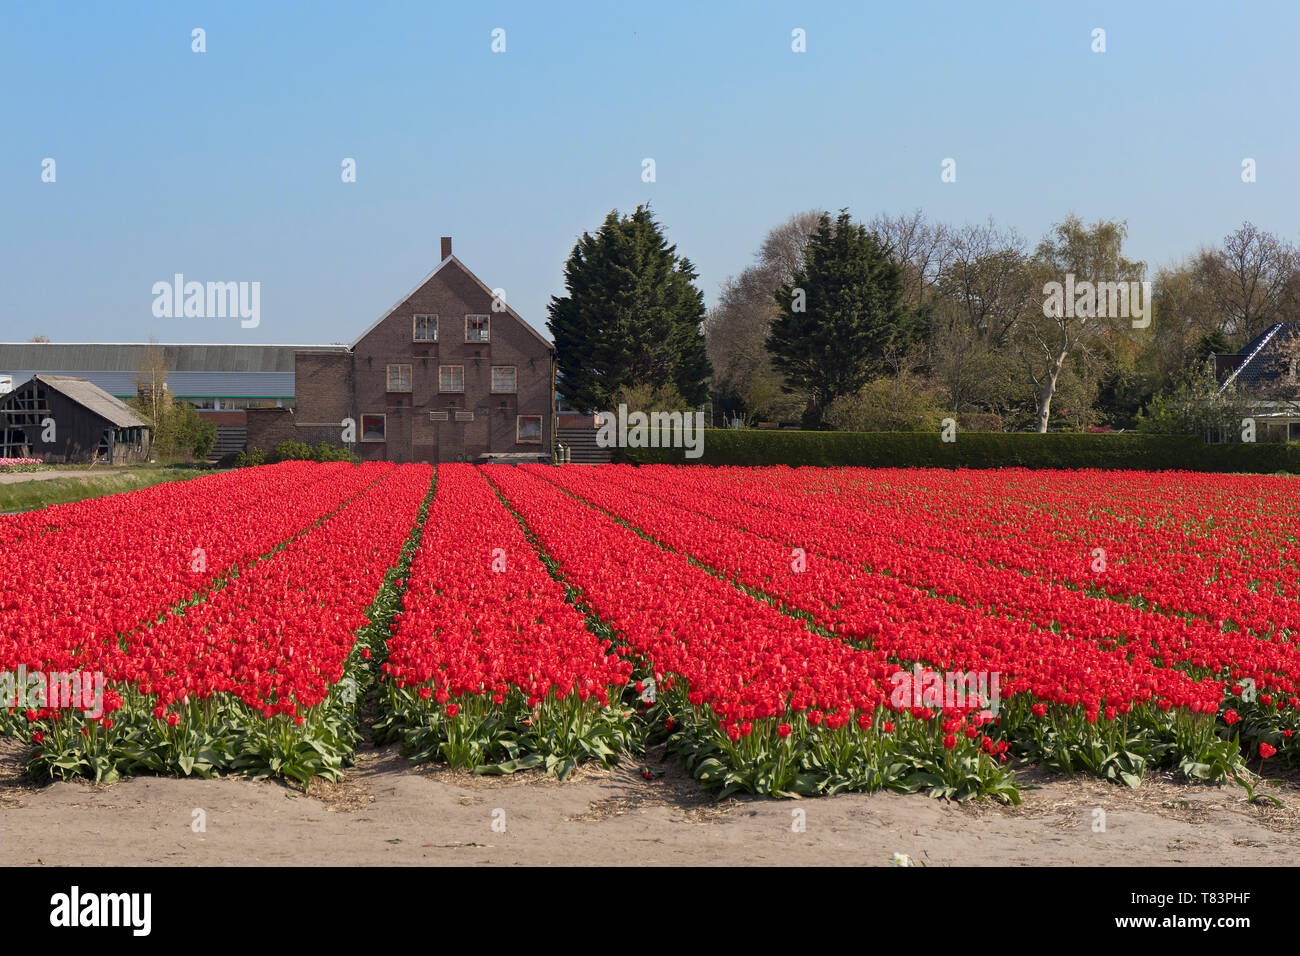 Lisse, Holland - April 18, 2019: Traditional Dutch tulip field with rows of red flowers and bulb sheds in the background Stock Photo